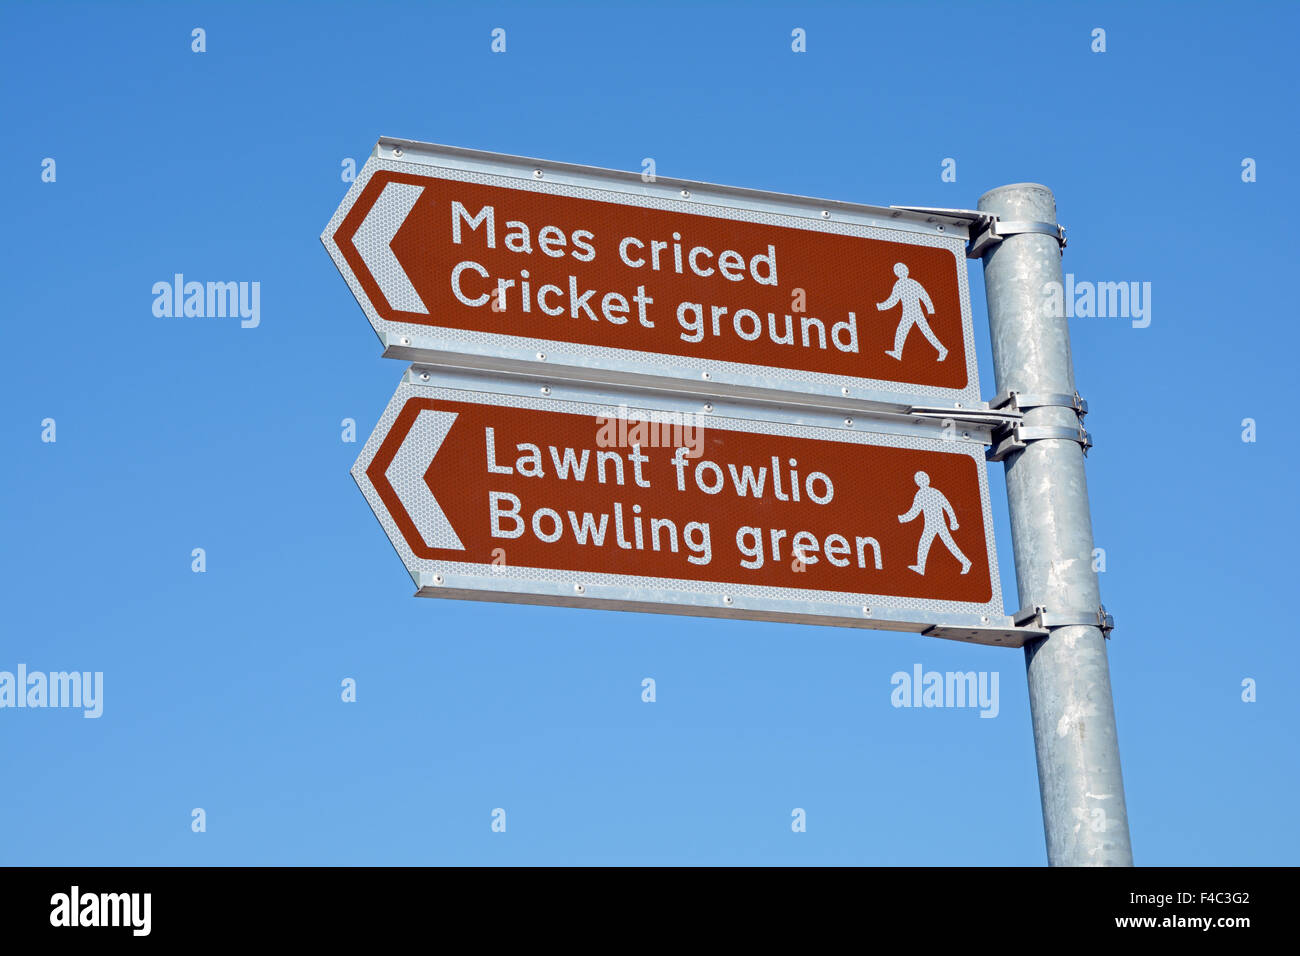 Seen in North Wales on the coastal road, - Stock Image